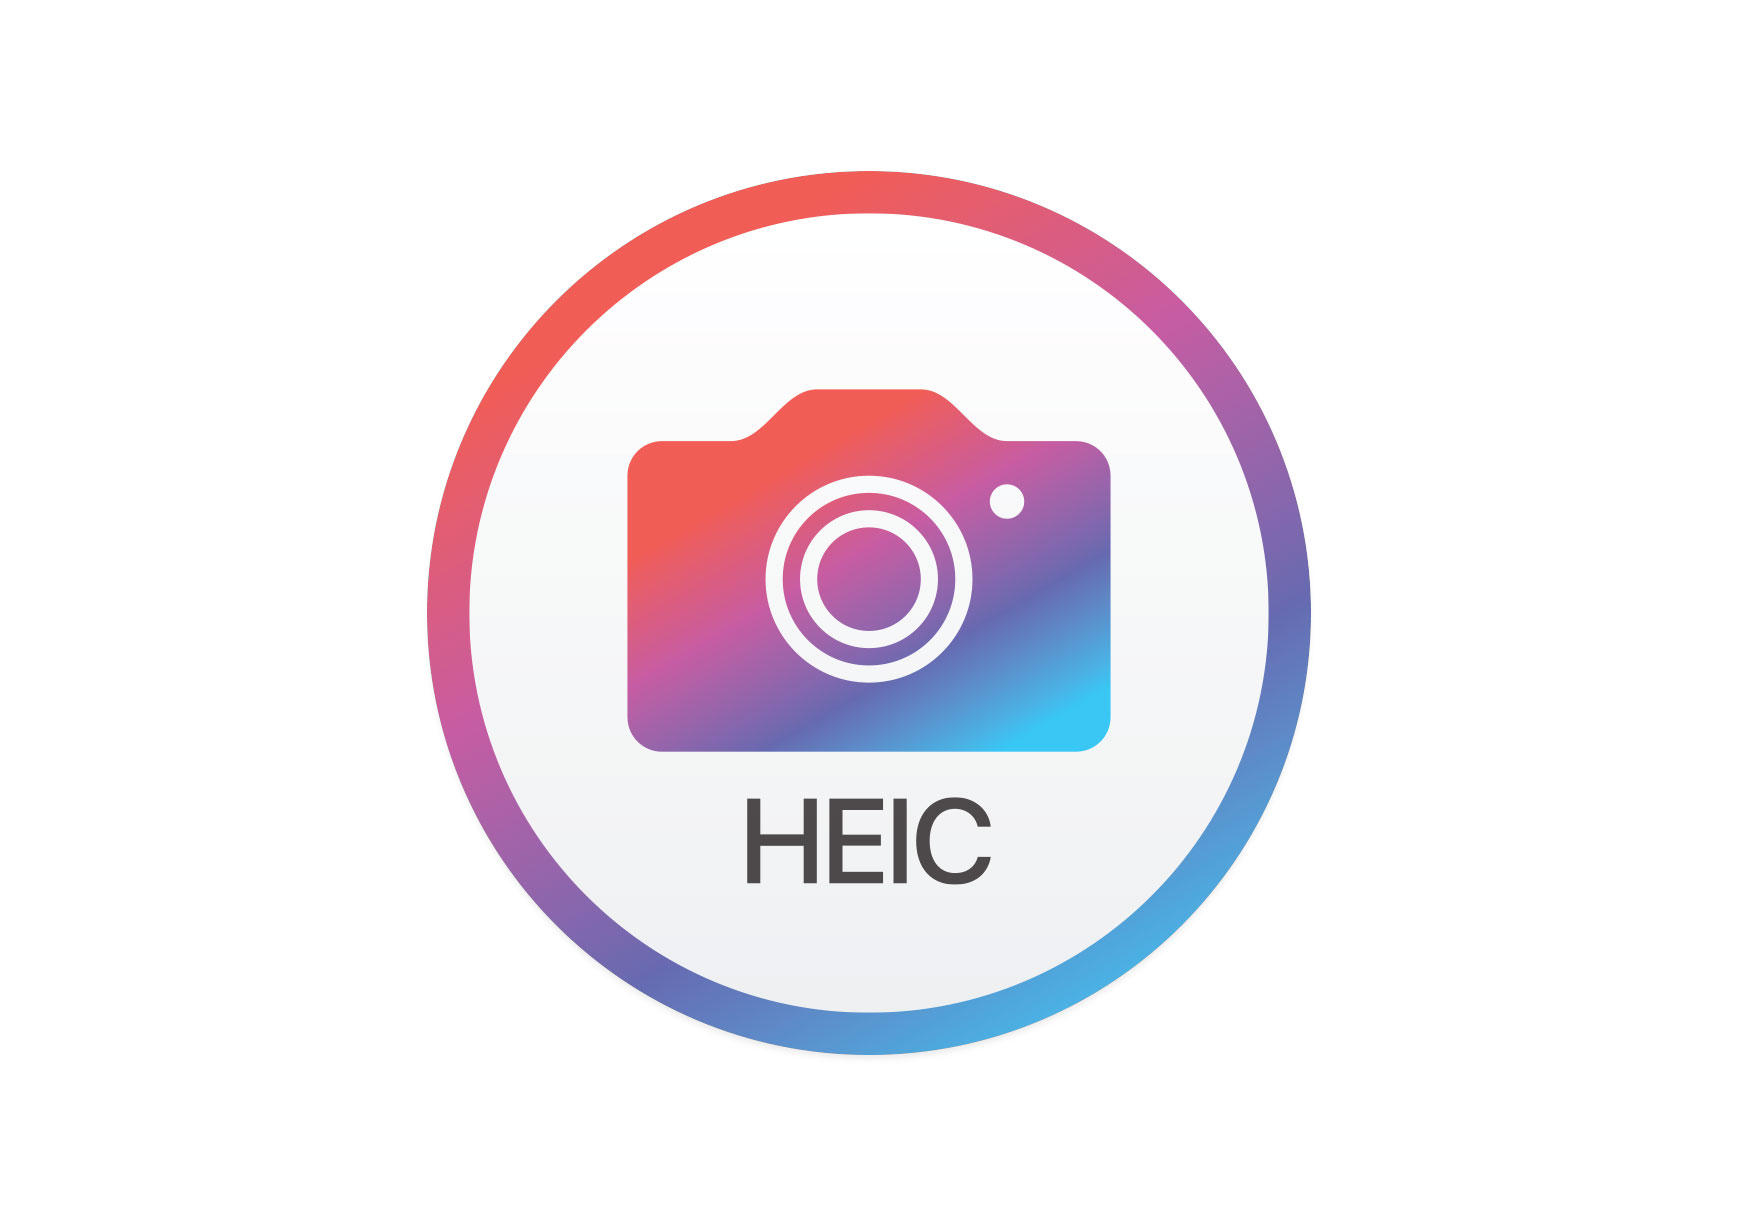 iMazing's converter can help if you're stuck with an HEIC image you need to change to JPEG.